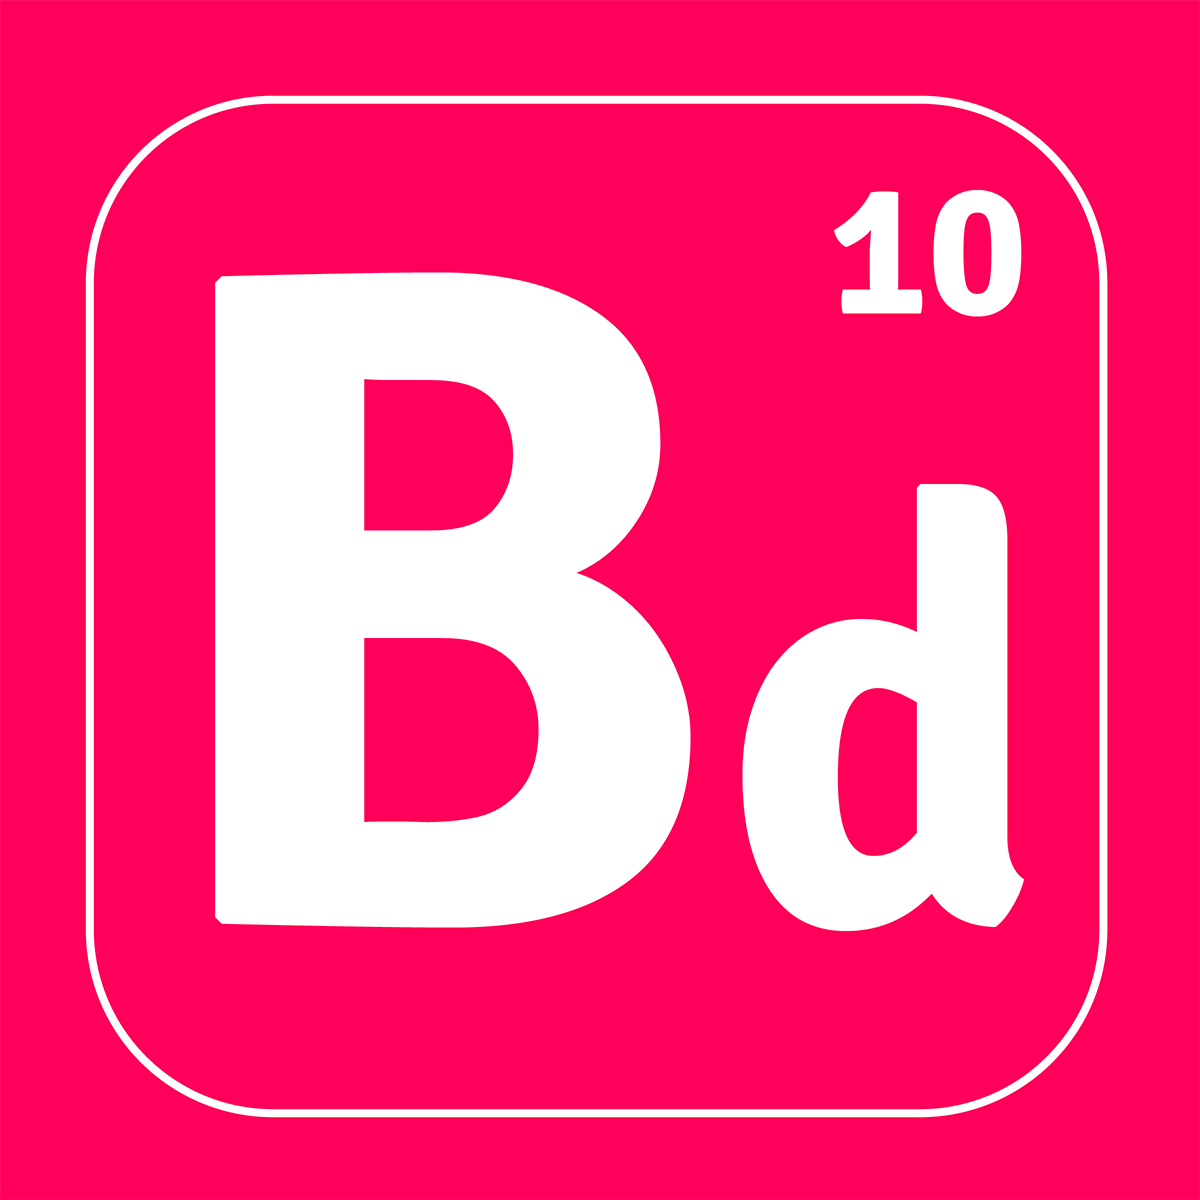 BD app by TenGrowth